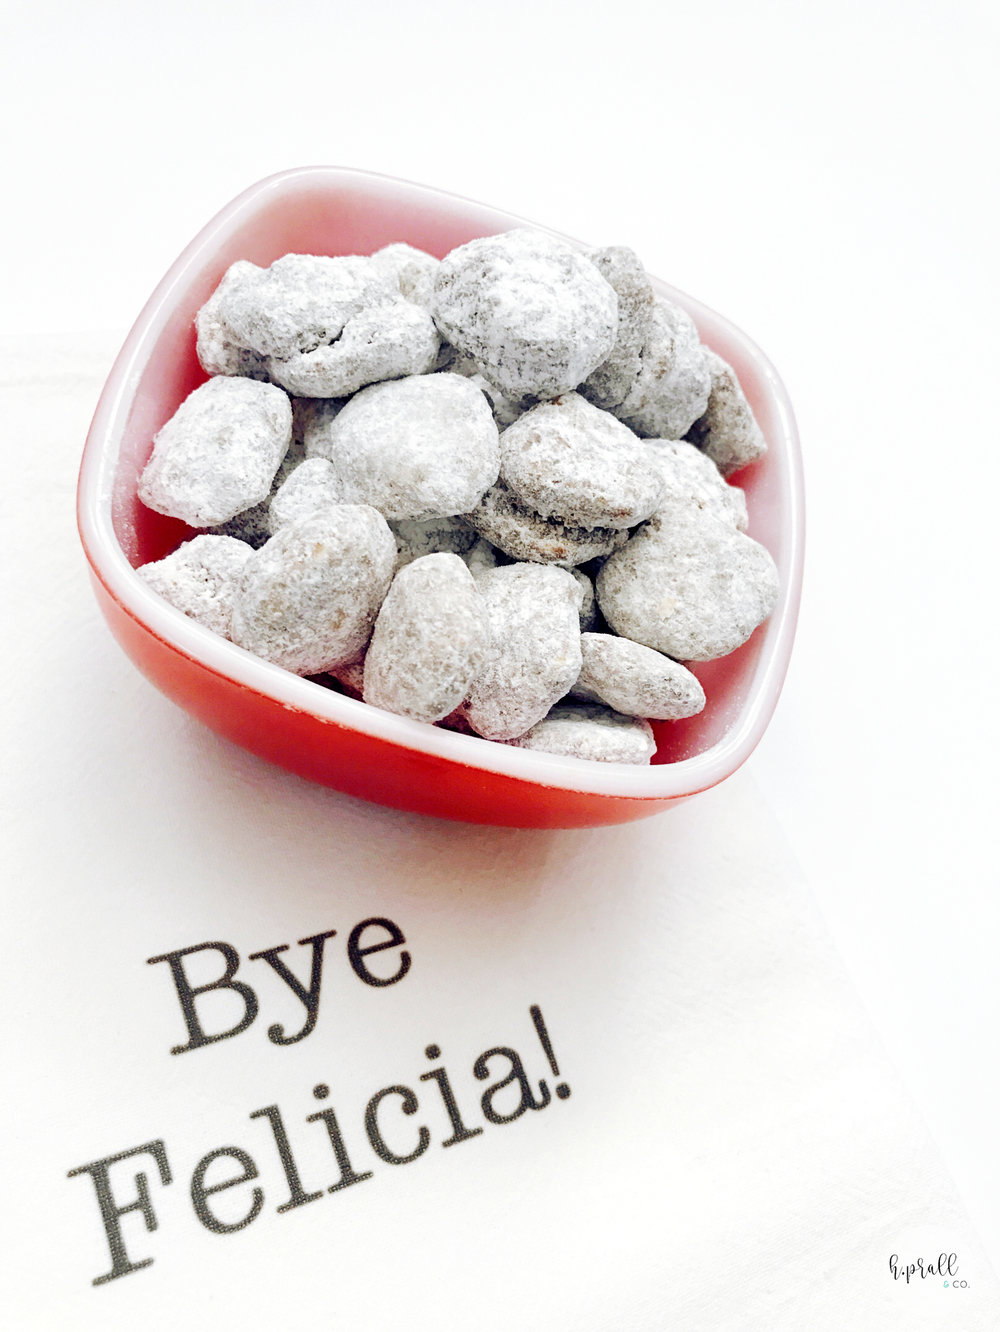 Full bowl of puppy chow on a Bye Felicia kitchen towel.  Get the recipe at hprallandco.com.